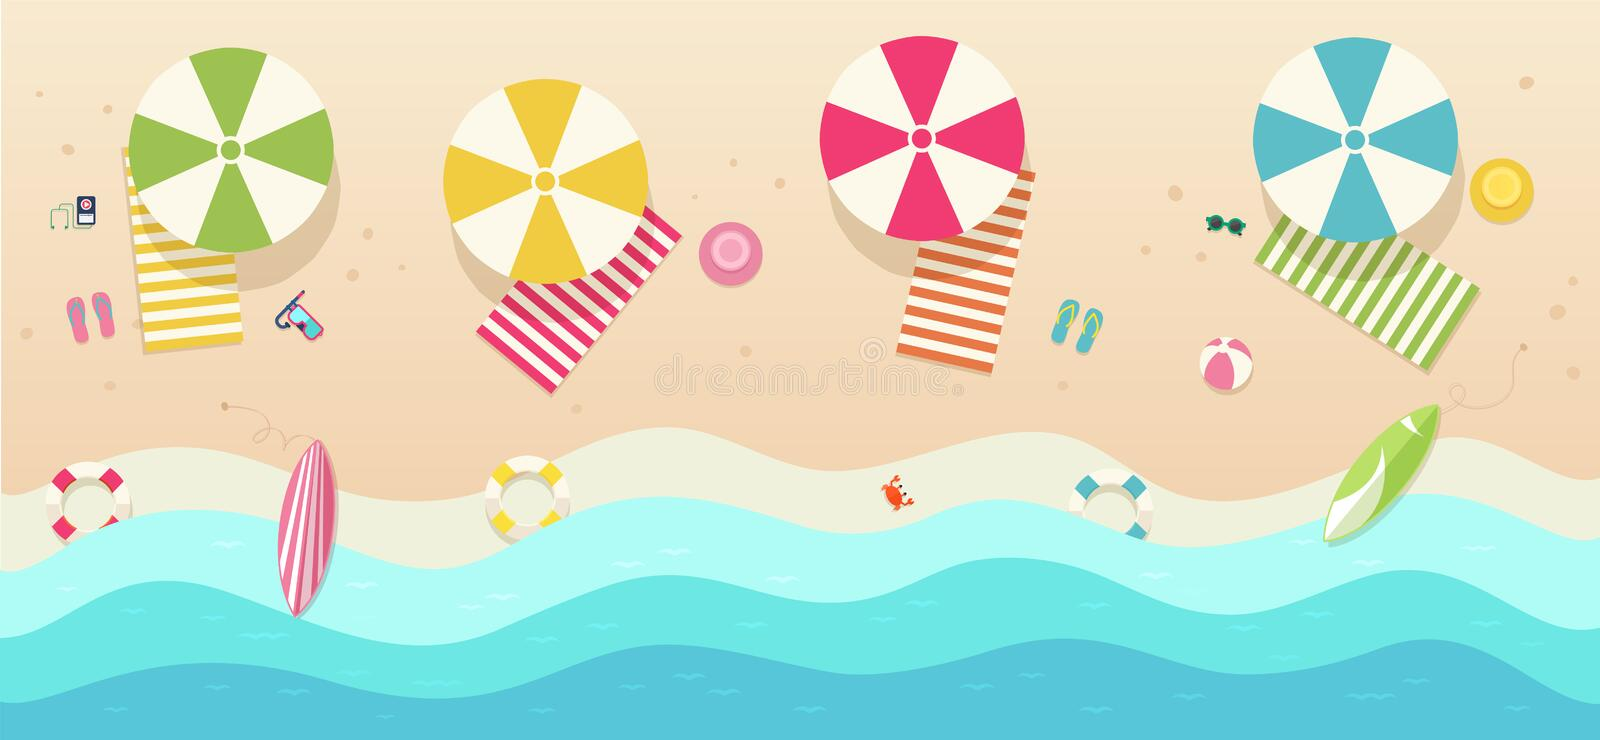 Beach, top view with umbrellas, towels, surfboards, sunglasses, hats, ball. stock illustration